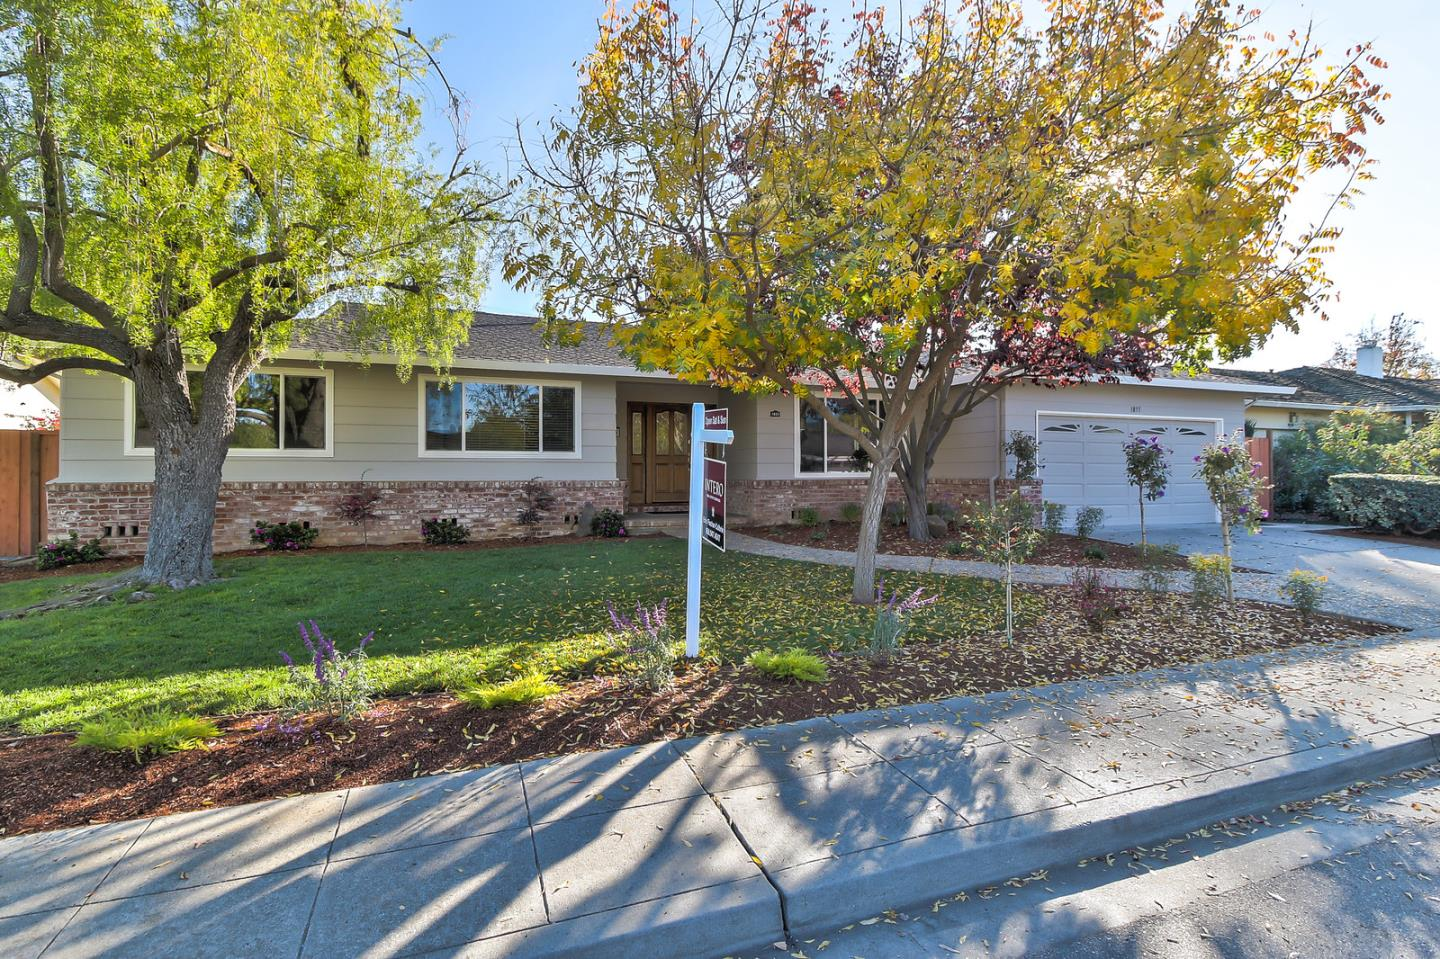 Single Family Home for Sale at 1855 Fordham Way 1855 Fordham Way Mountain View, California 94040 United States